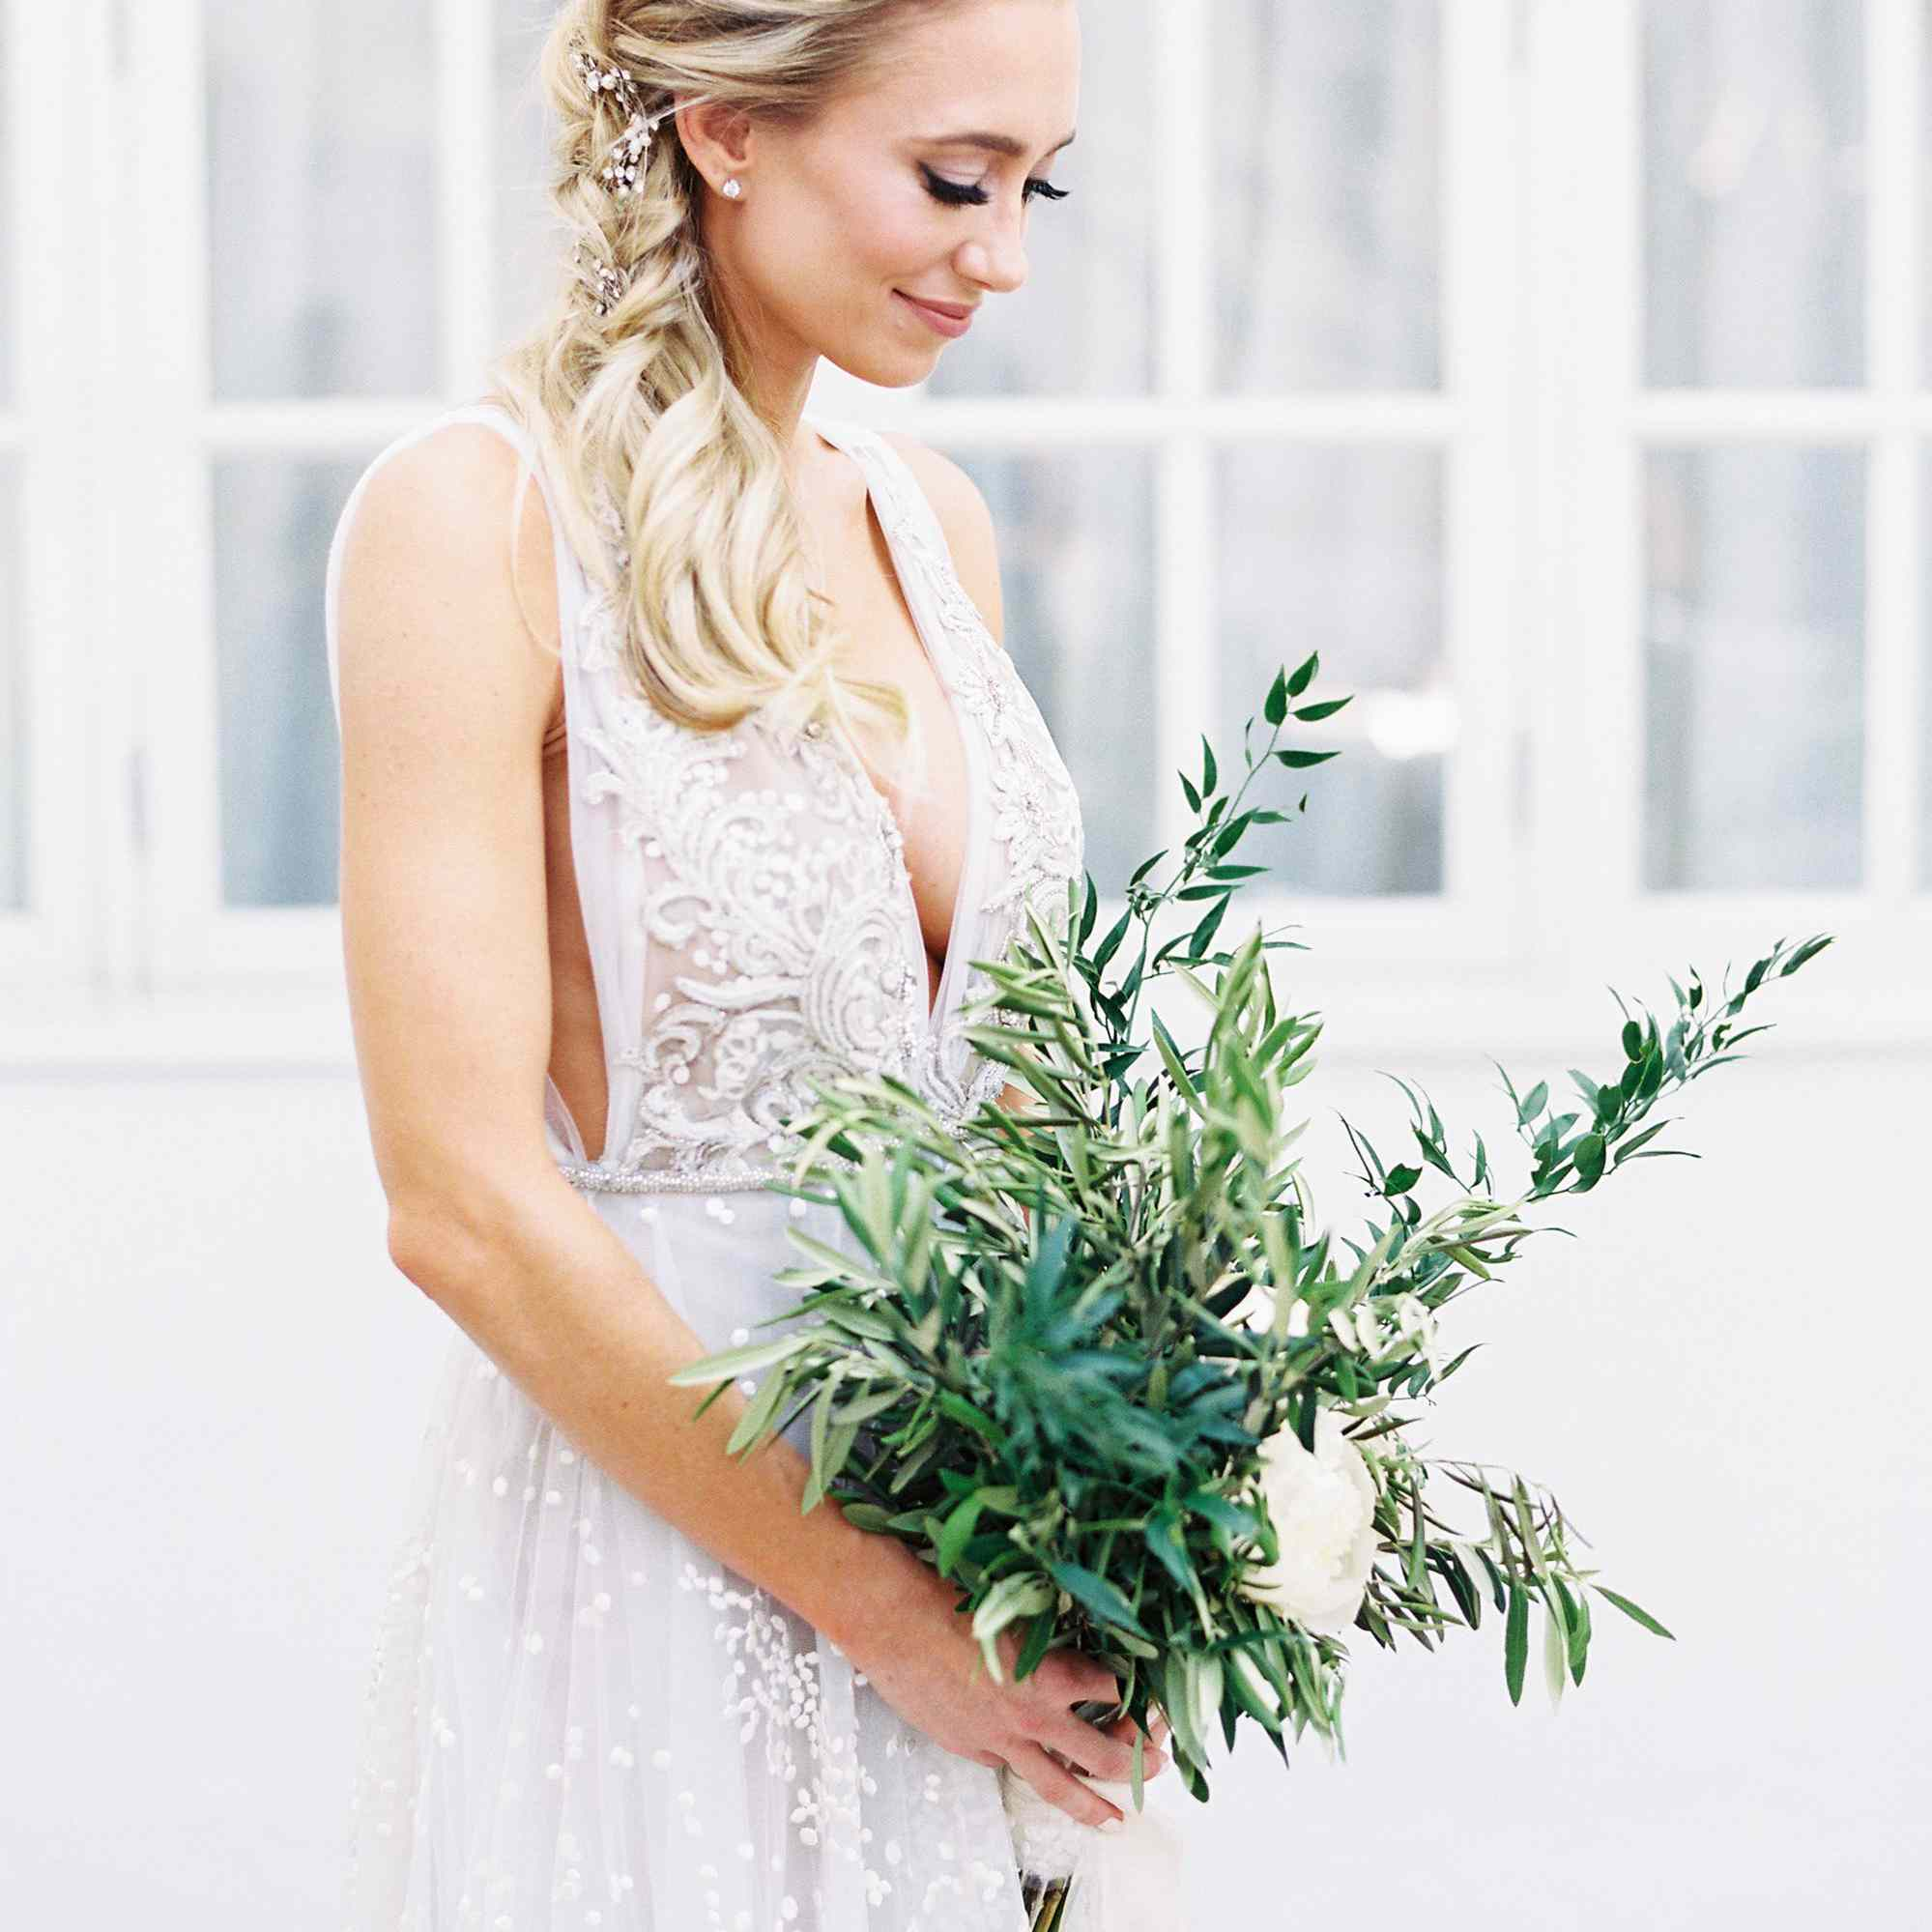 Bride holding bouquet of greenery